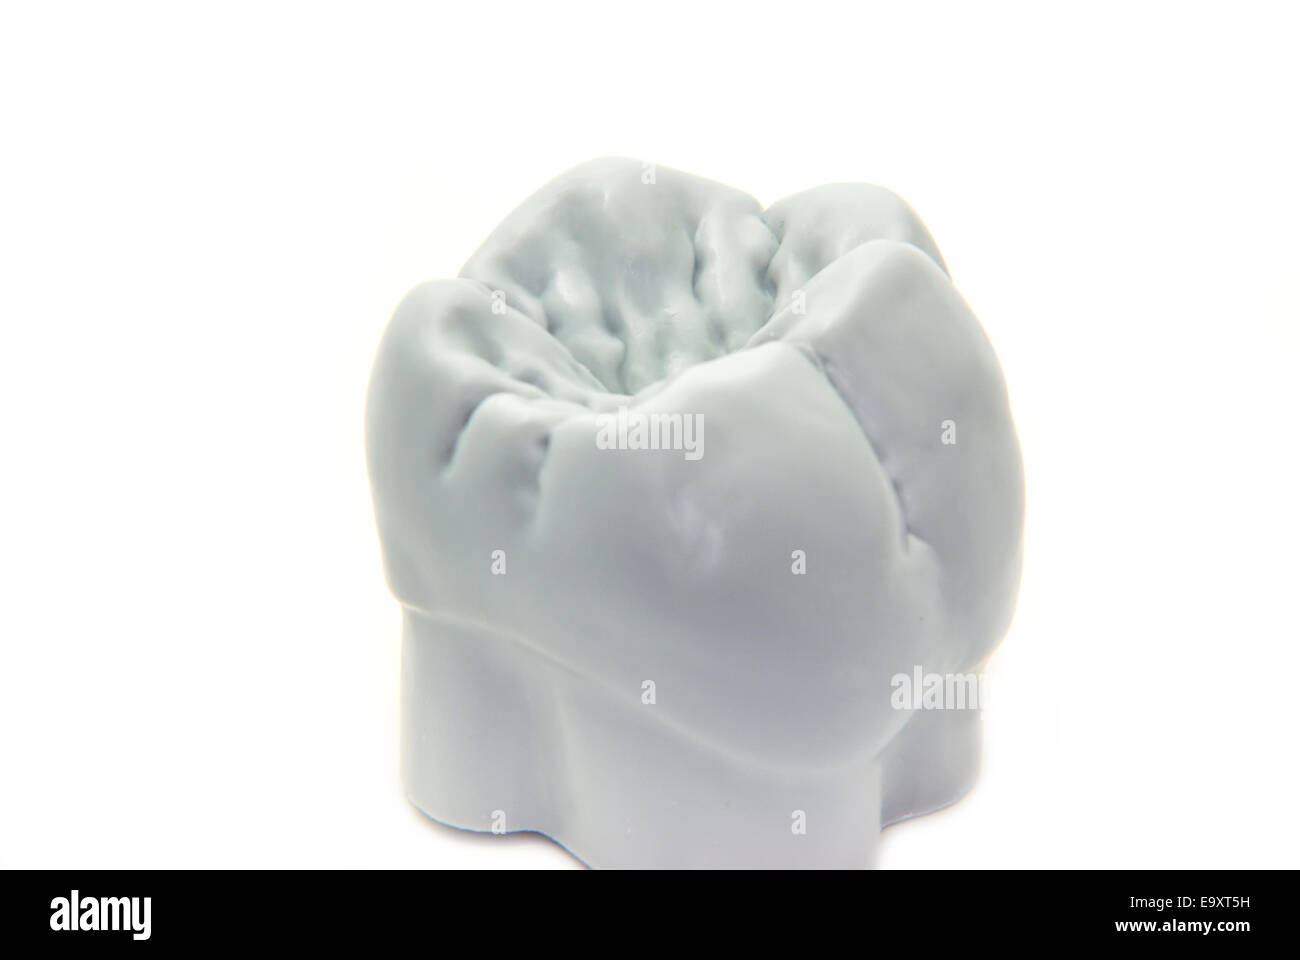 Molar With Dentist Background Stock Photos & Molar With Dentist ...